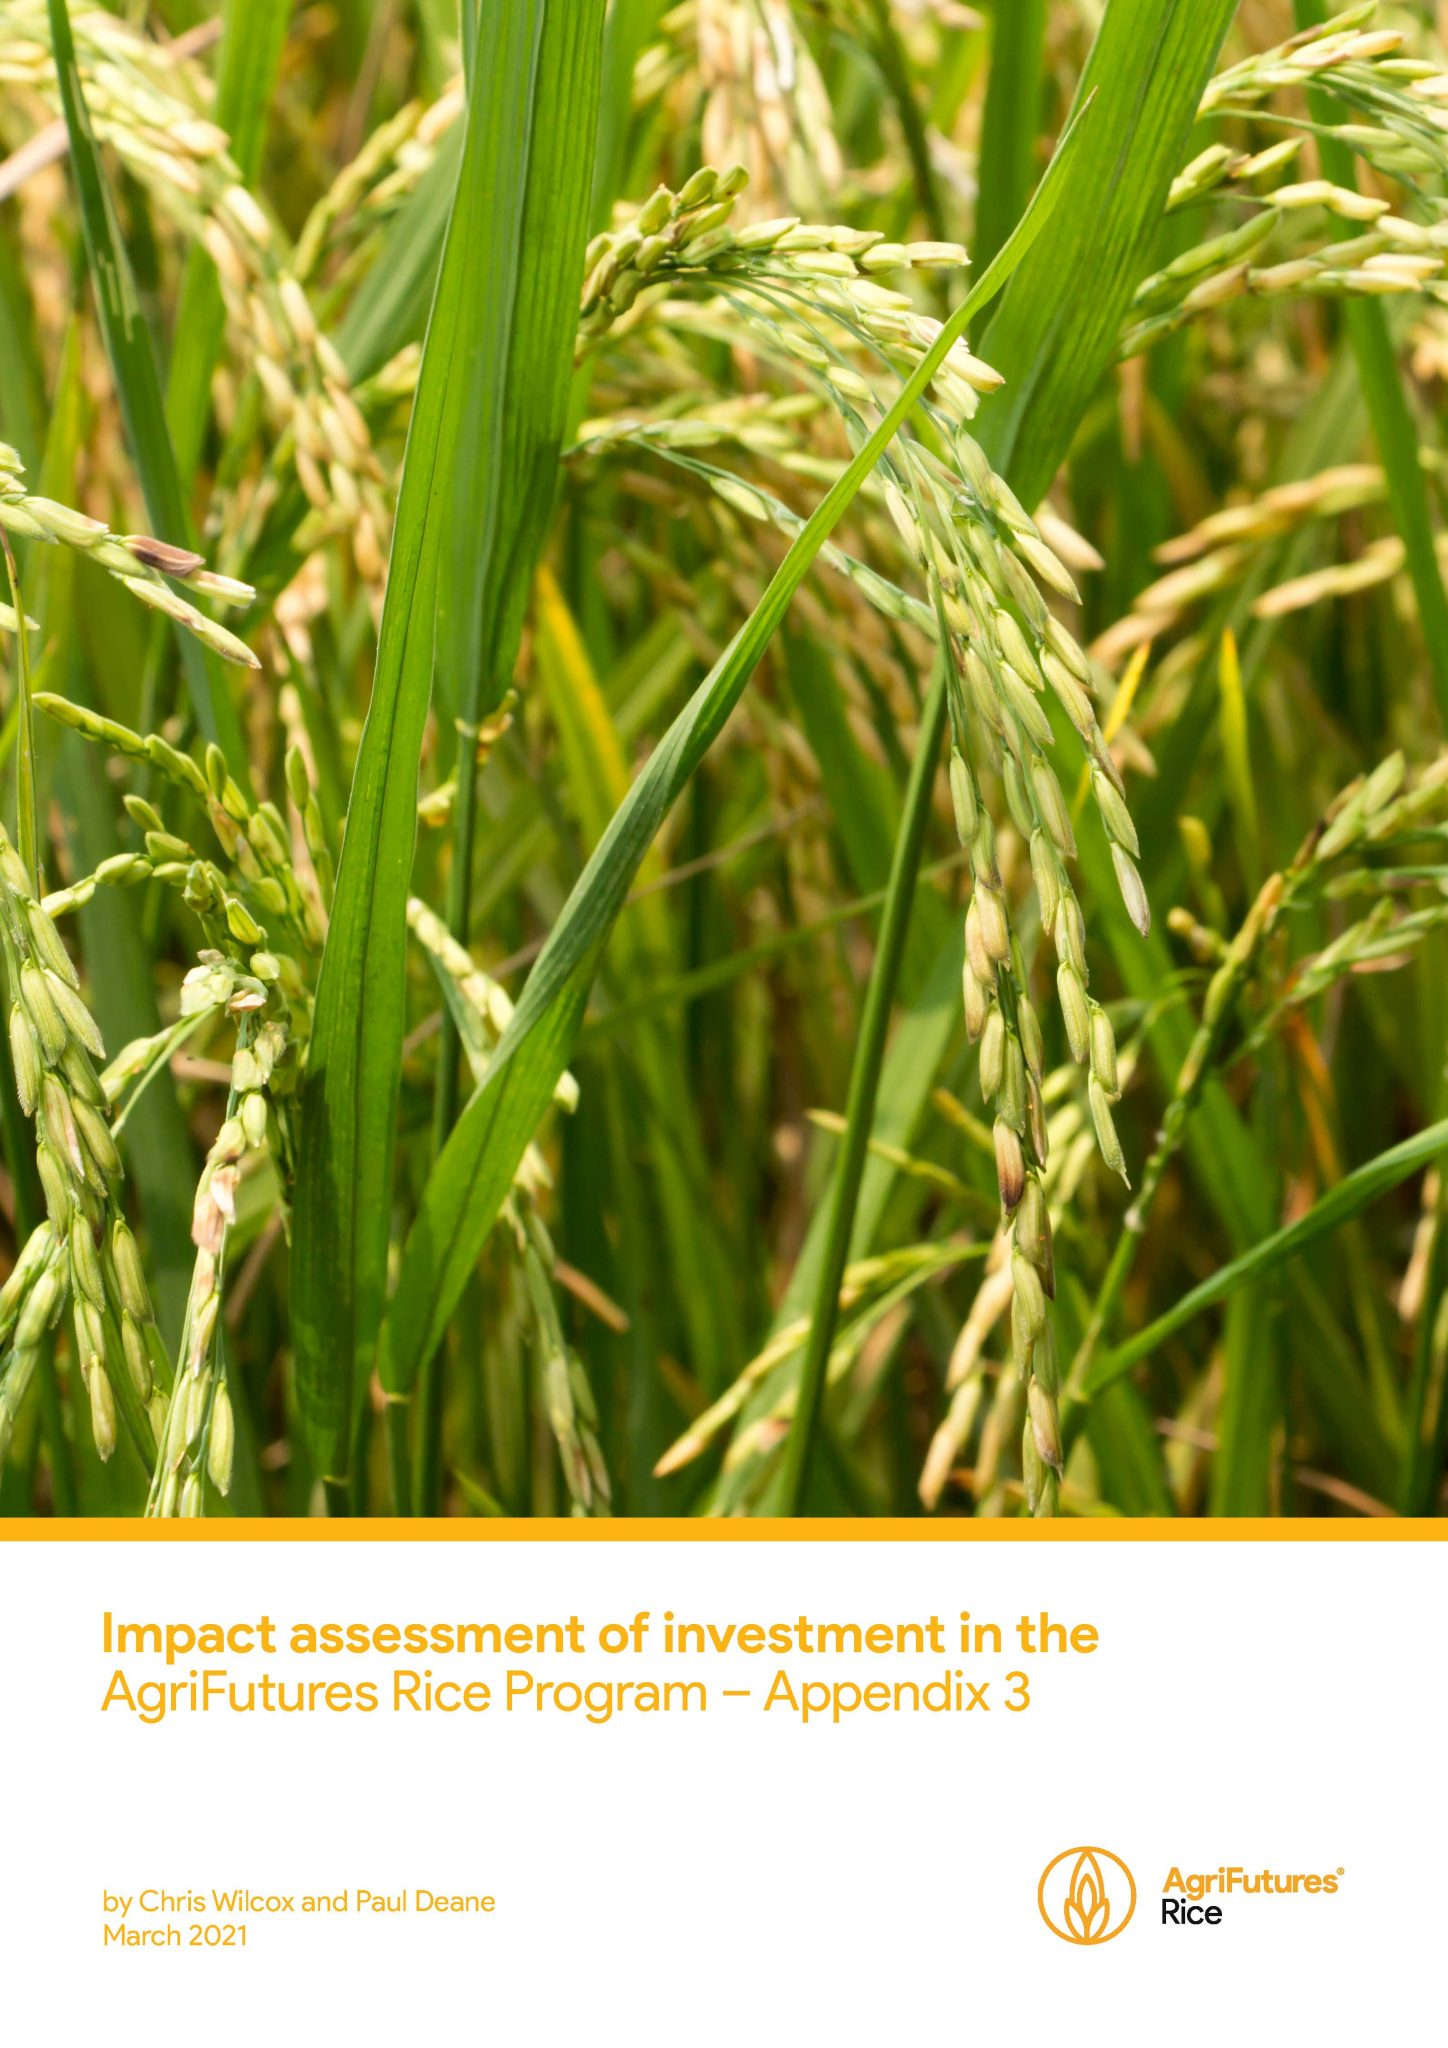 Impact assessment of investment in the AgriFutures Rice Program – Appendix 3 - image